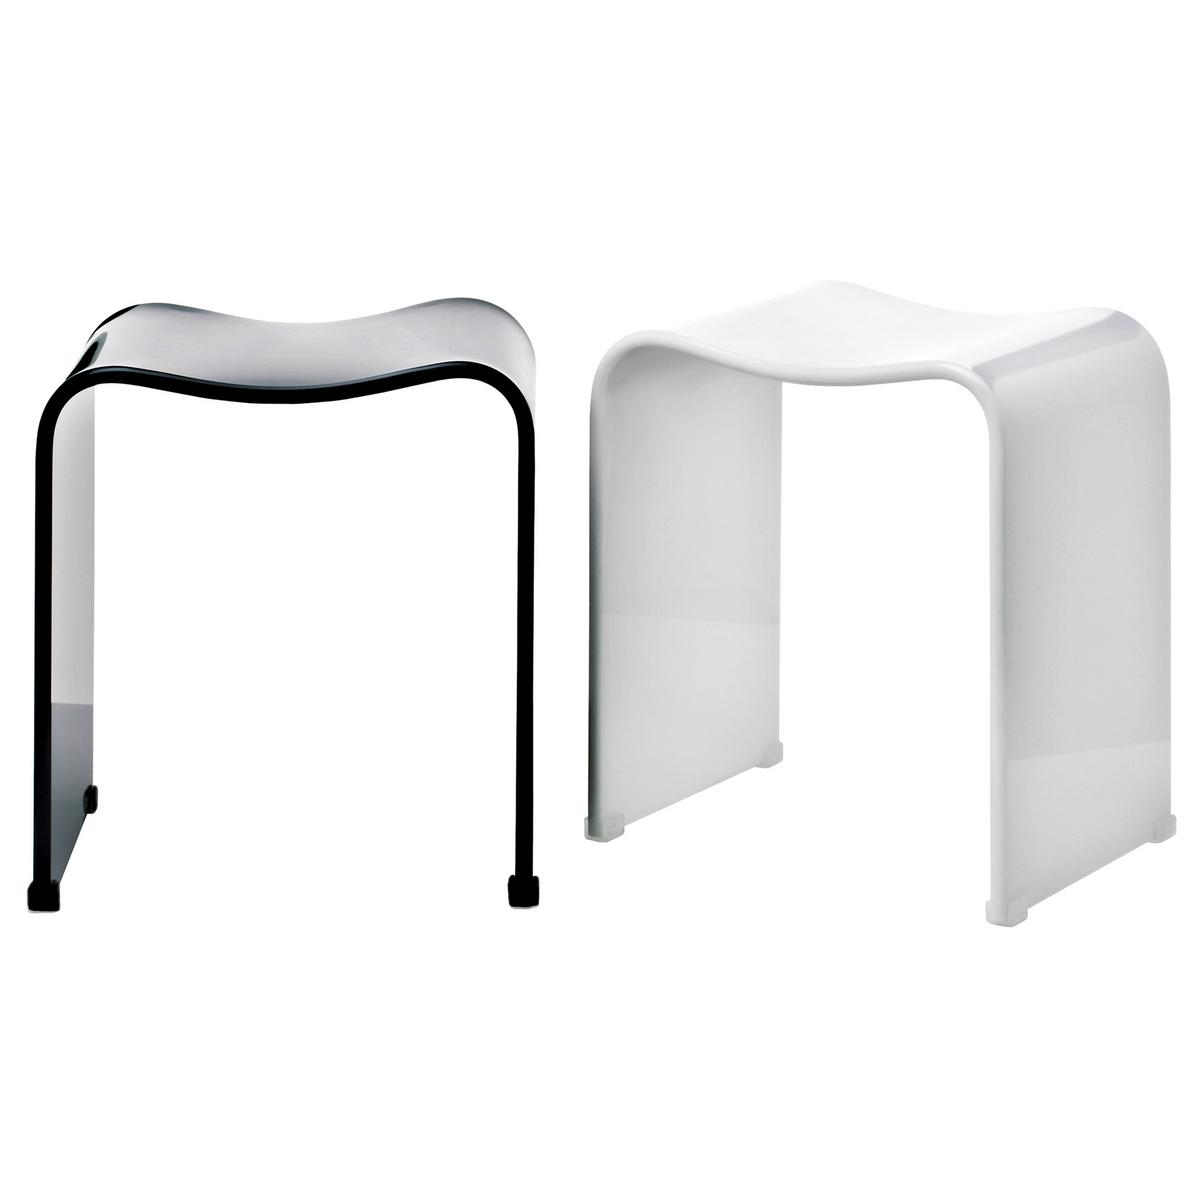 Decor Walther Wave shower stools | Artedona.com: https://www.artedona.com/en/Bed-Bath/Bath-accessories/Decor-Walther...